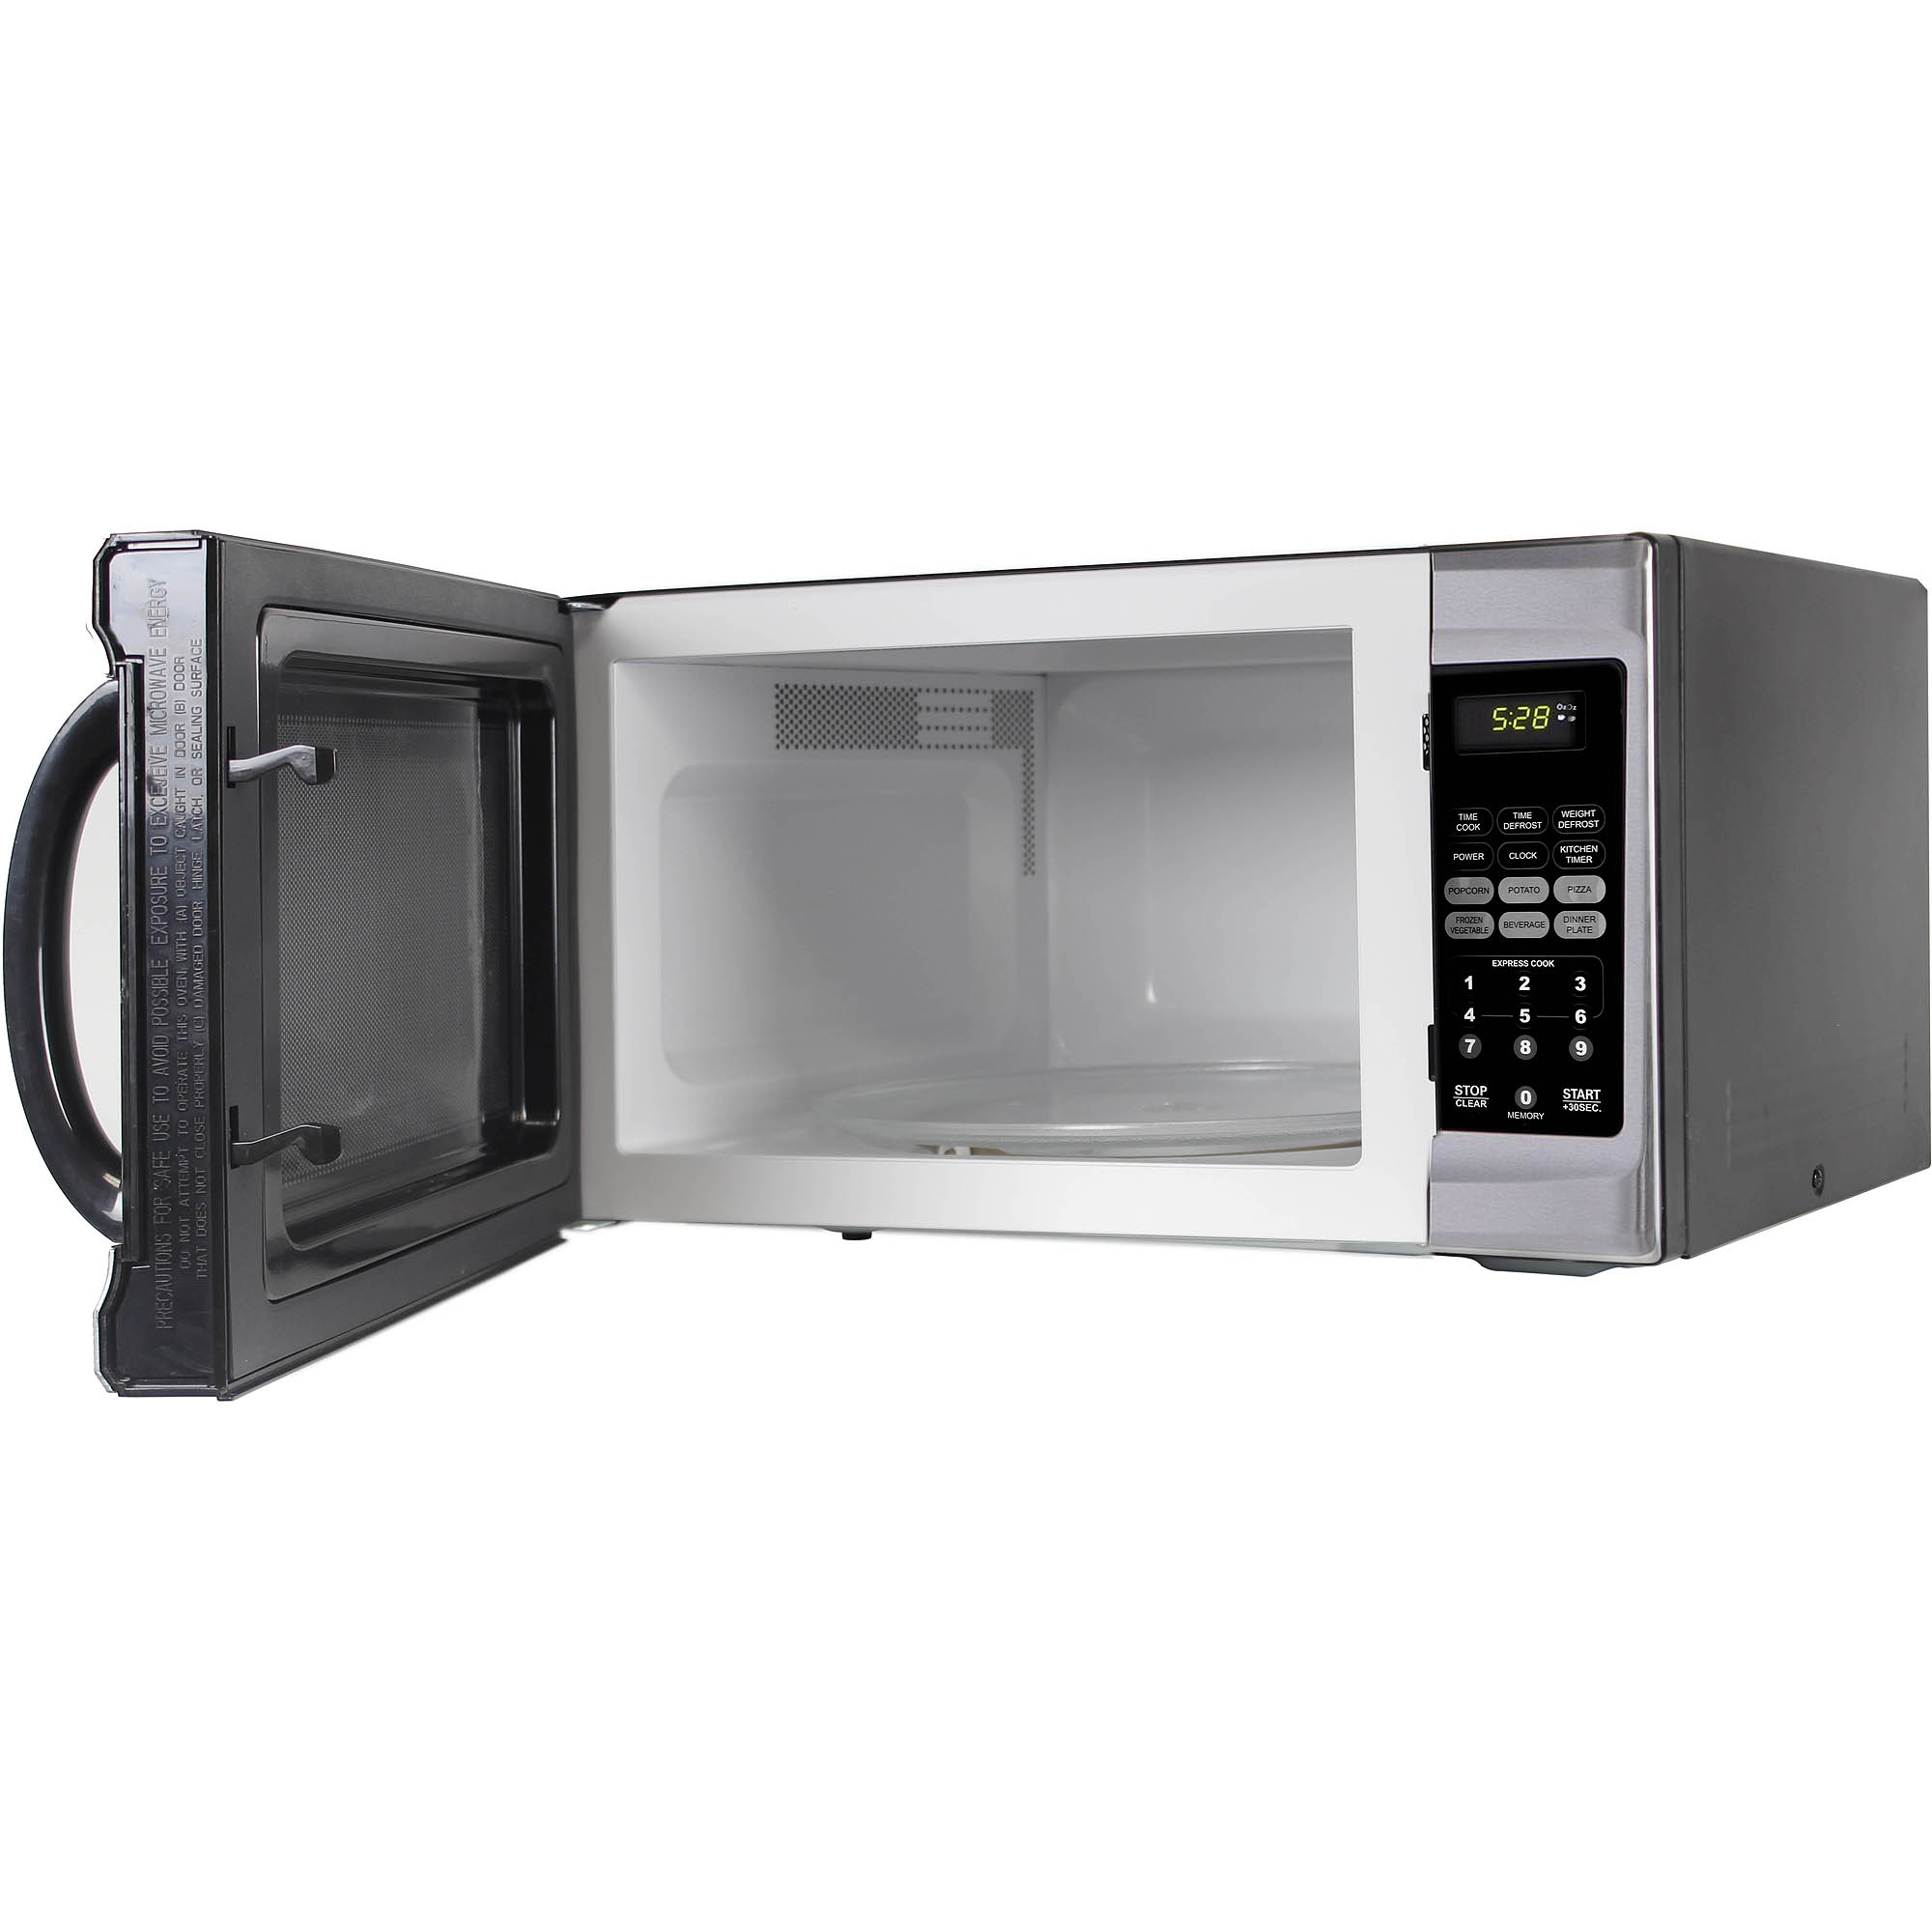 refurbished emerson 1 3 cu ft 1000 watt touch control microwave oven stainless steel